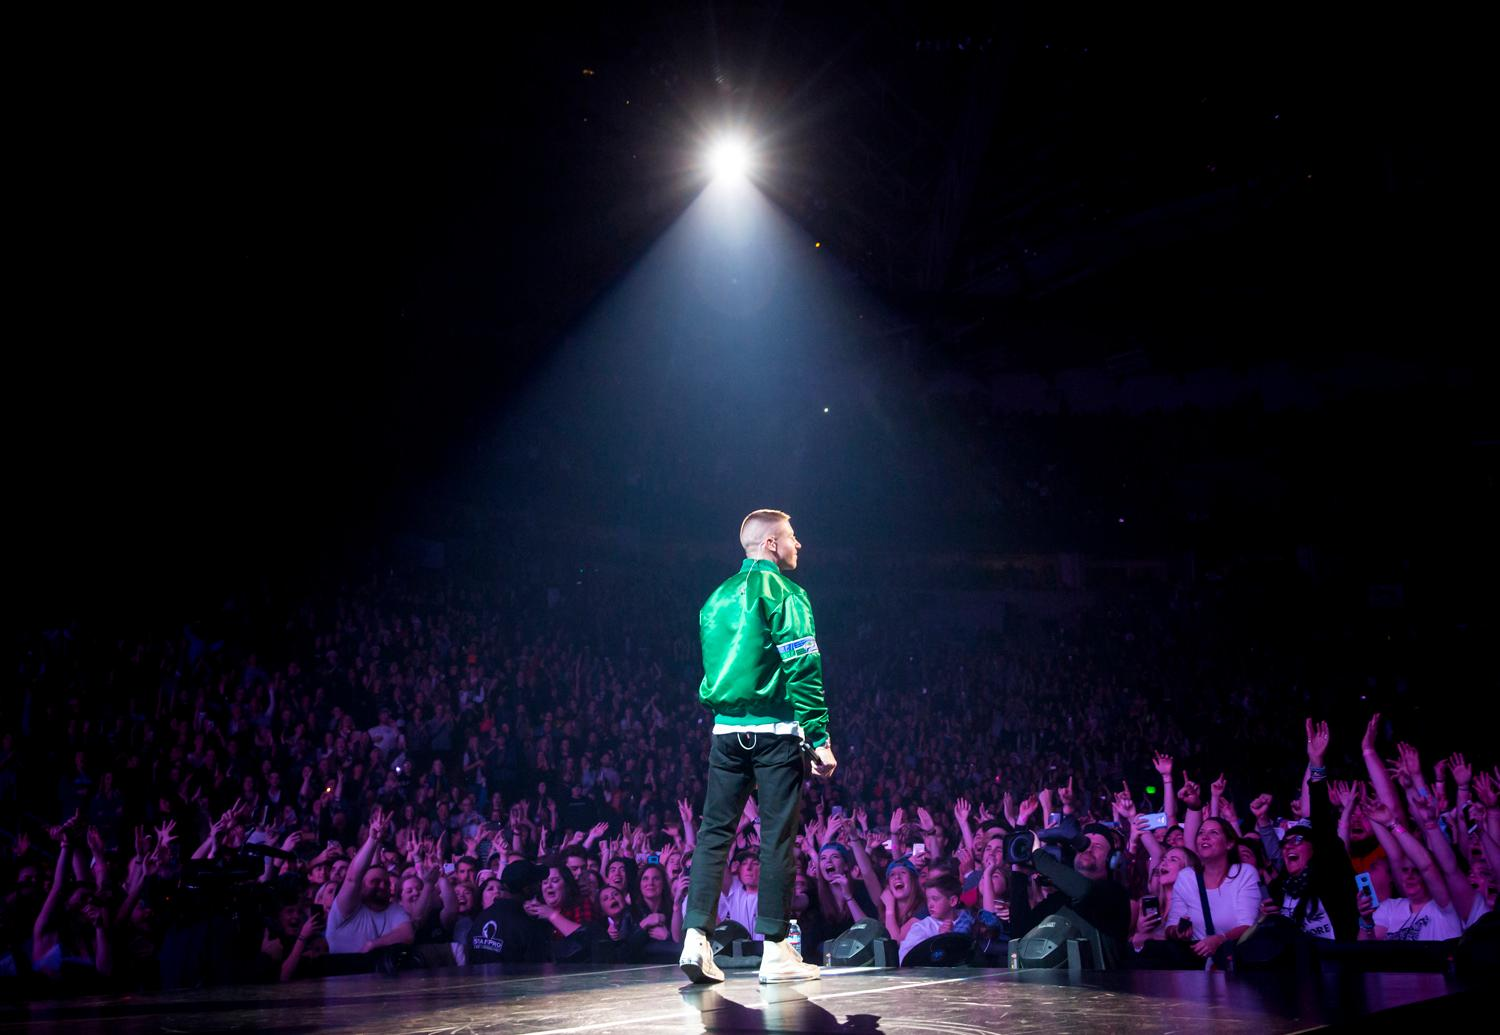 He's home! After being on his Gemini album tour for months, the local rapper came home to play a packed crowd at the Key Arena in Seattle Friday, December 22, 2017. This is the first of two shows Macklemore is playing at the Key, the second being Saturday night December 23, 2017. The Seattle dates sold out within minutes of going online, and the crowds were packed to the brim both nights. (Image: Sy Bean / Seattle Refined)